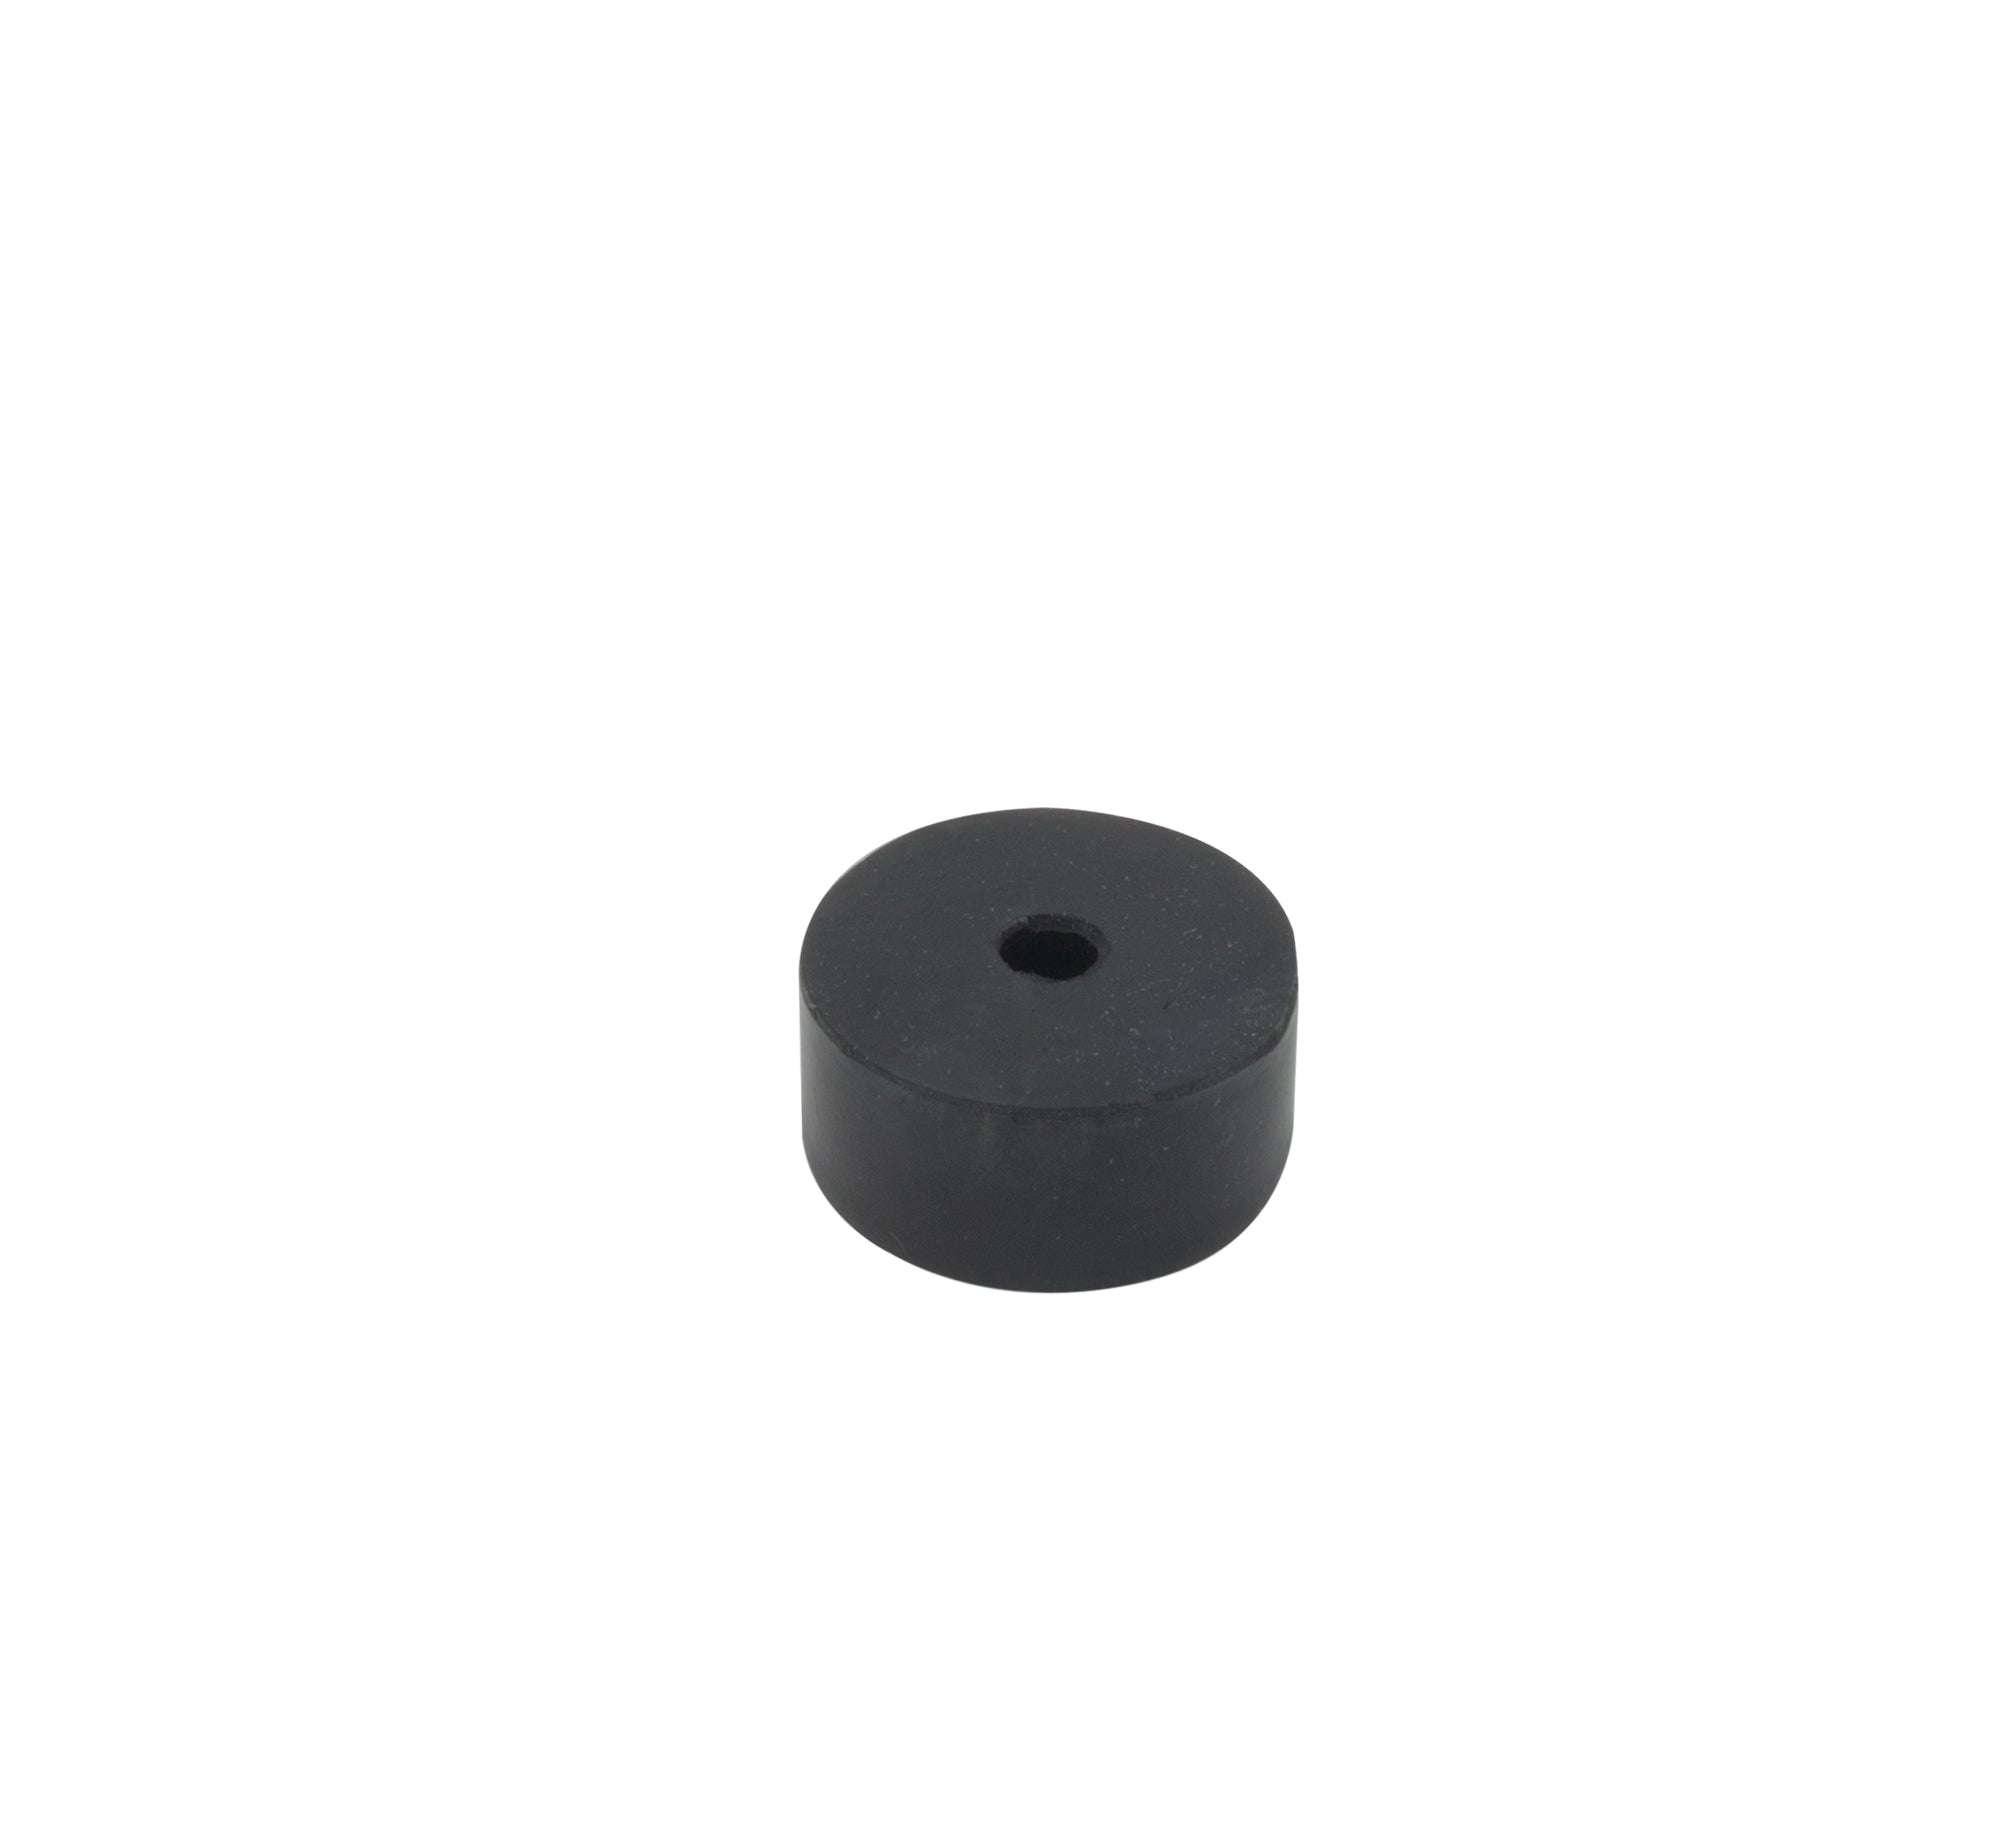 "OSP ATA-RUBBER-FOOT 1.5"" Diameter Rubber Foot with Steel Core, 3/4"" High"